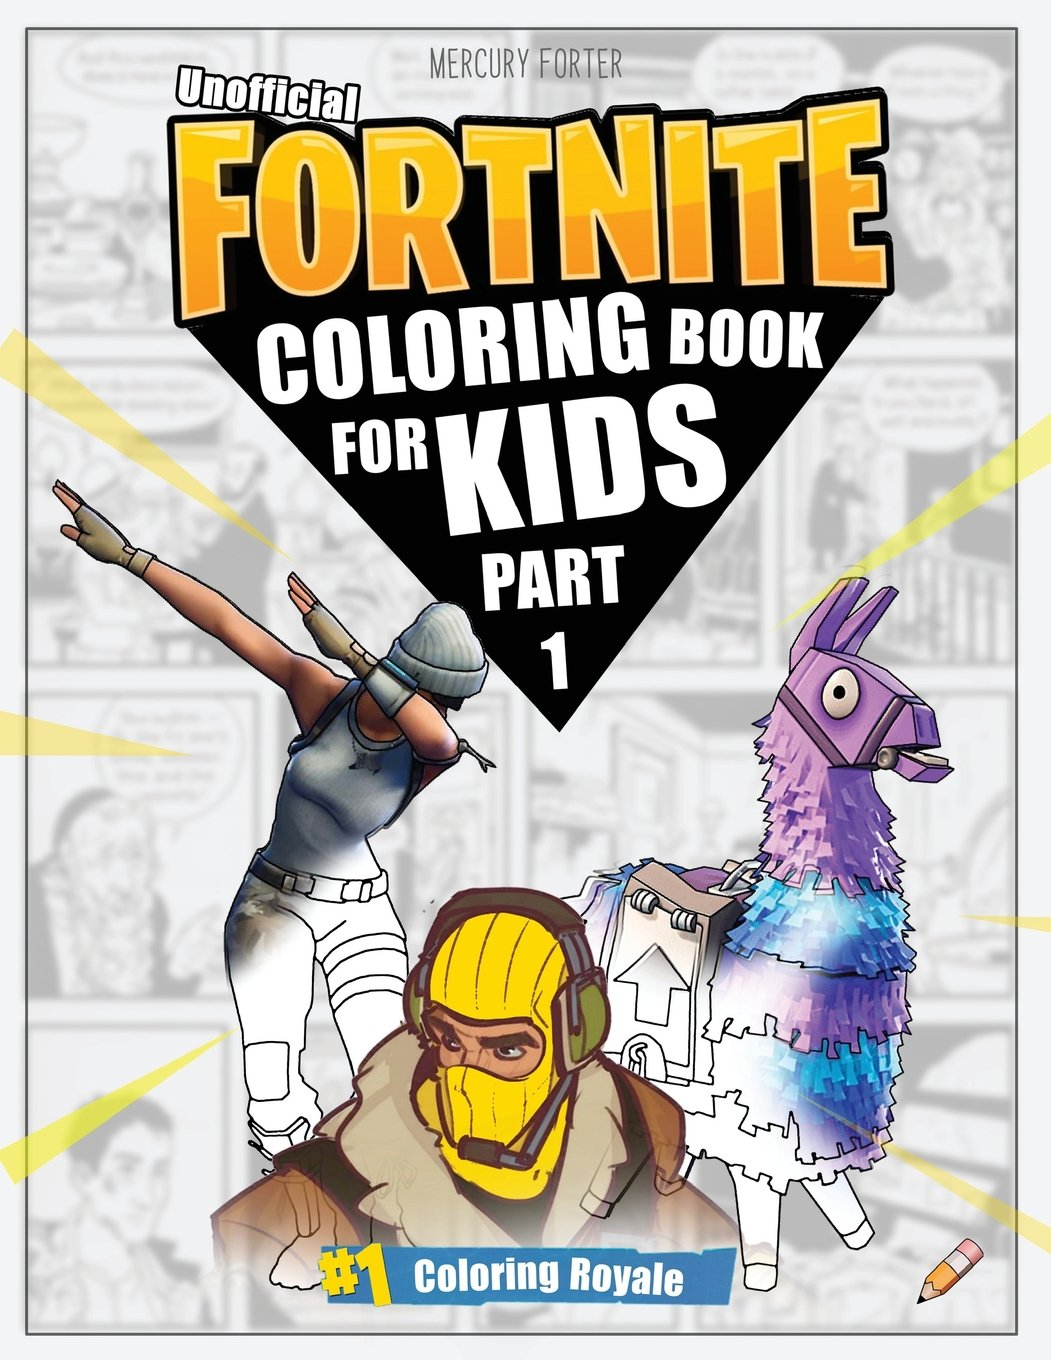 Fortnite Coloring Book Part 1 Unofficial Fortnite Coloring Book